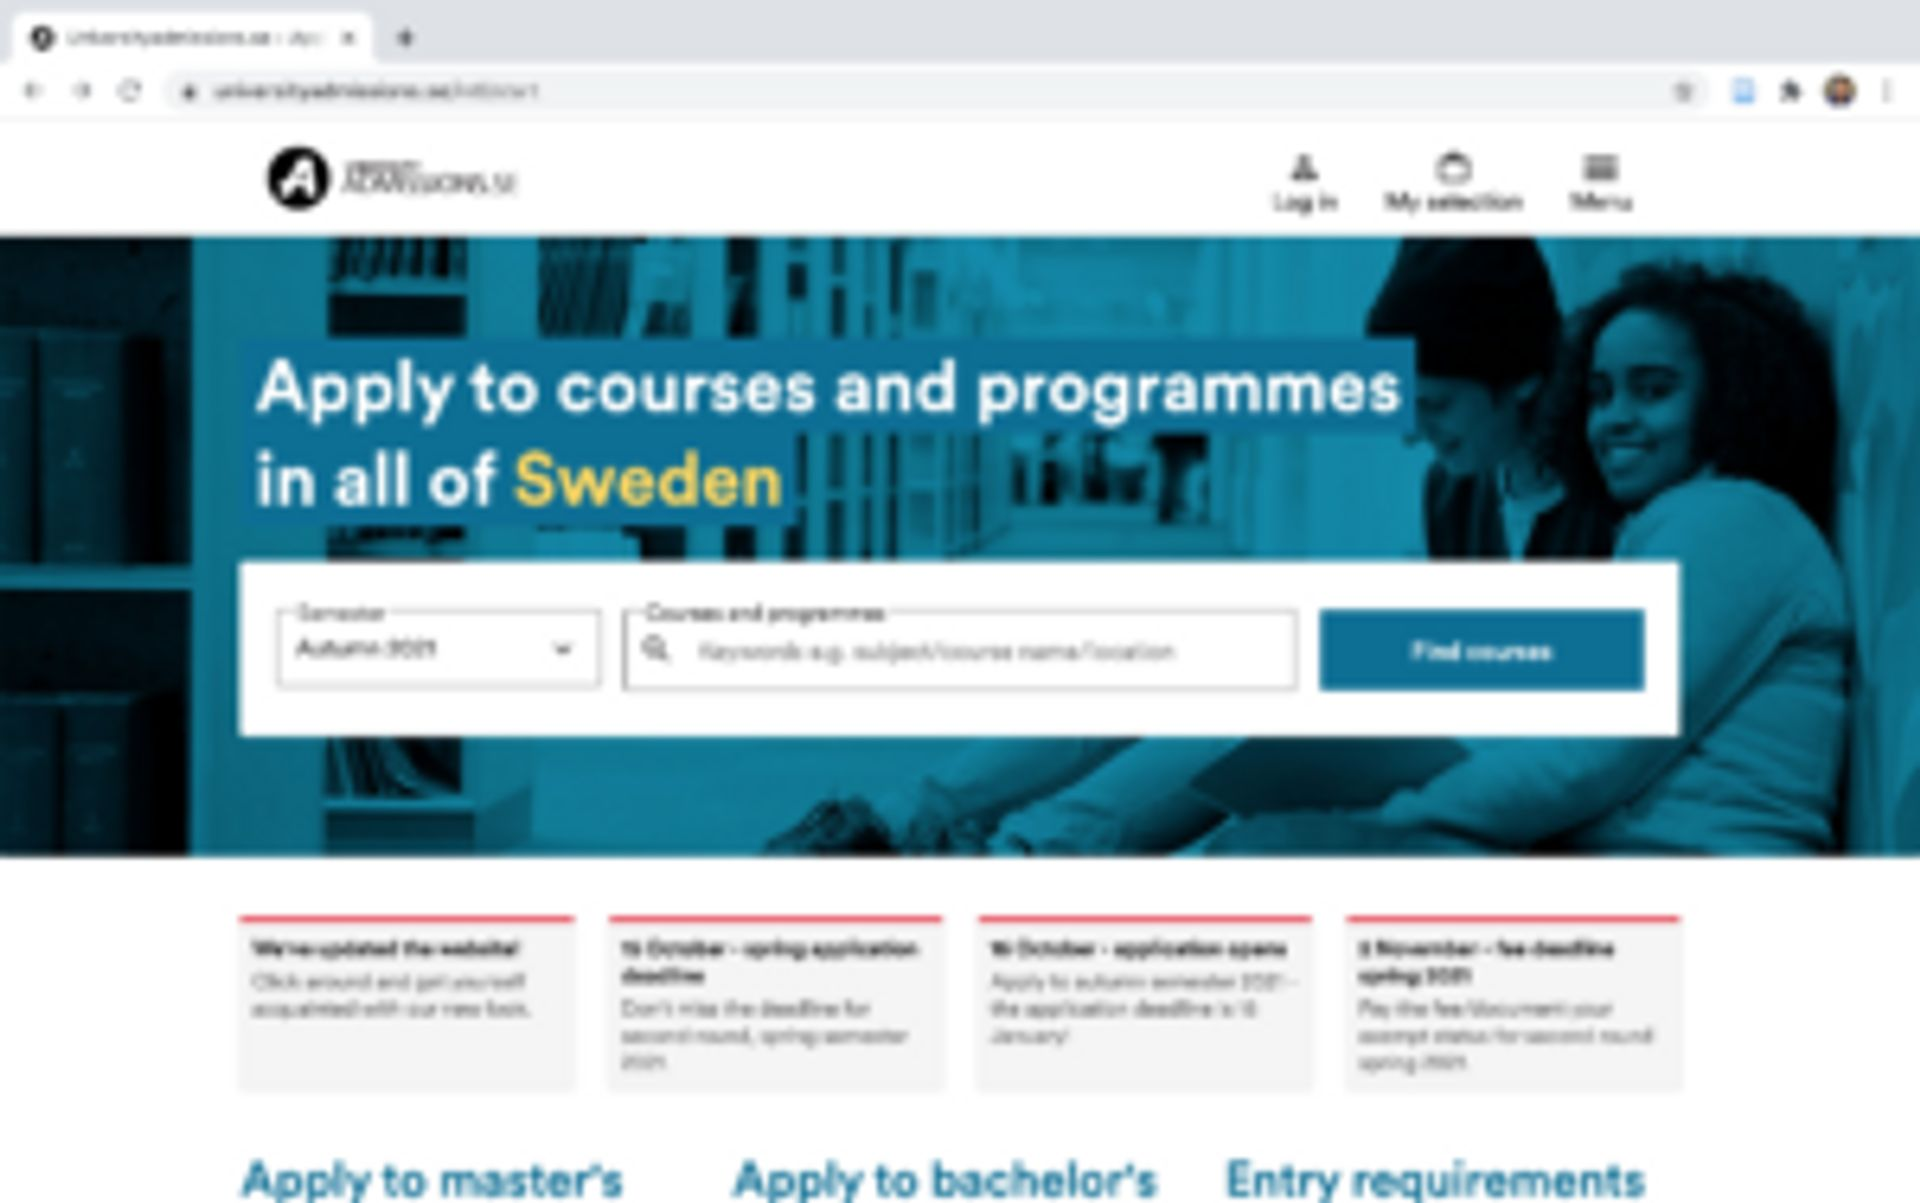 The University Admissions startpage. Caption reads 'Apply to courses and programmes in all of Sweden'.